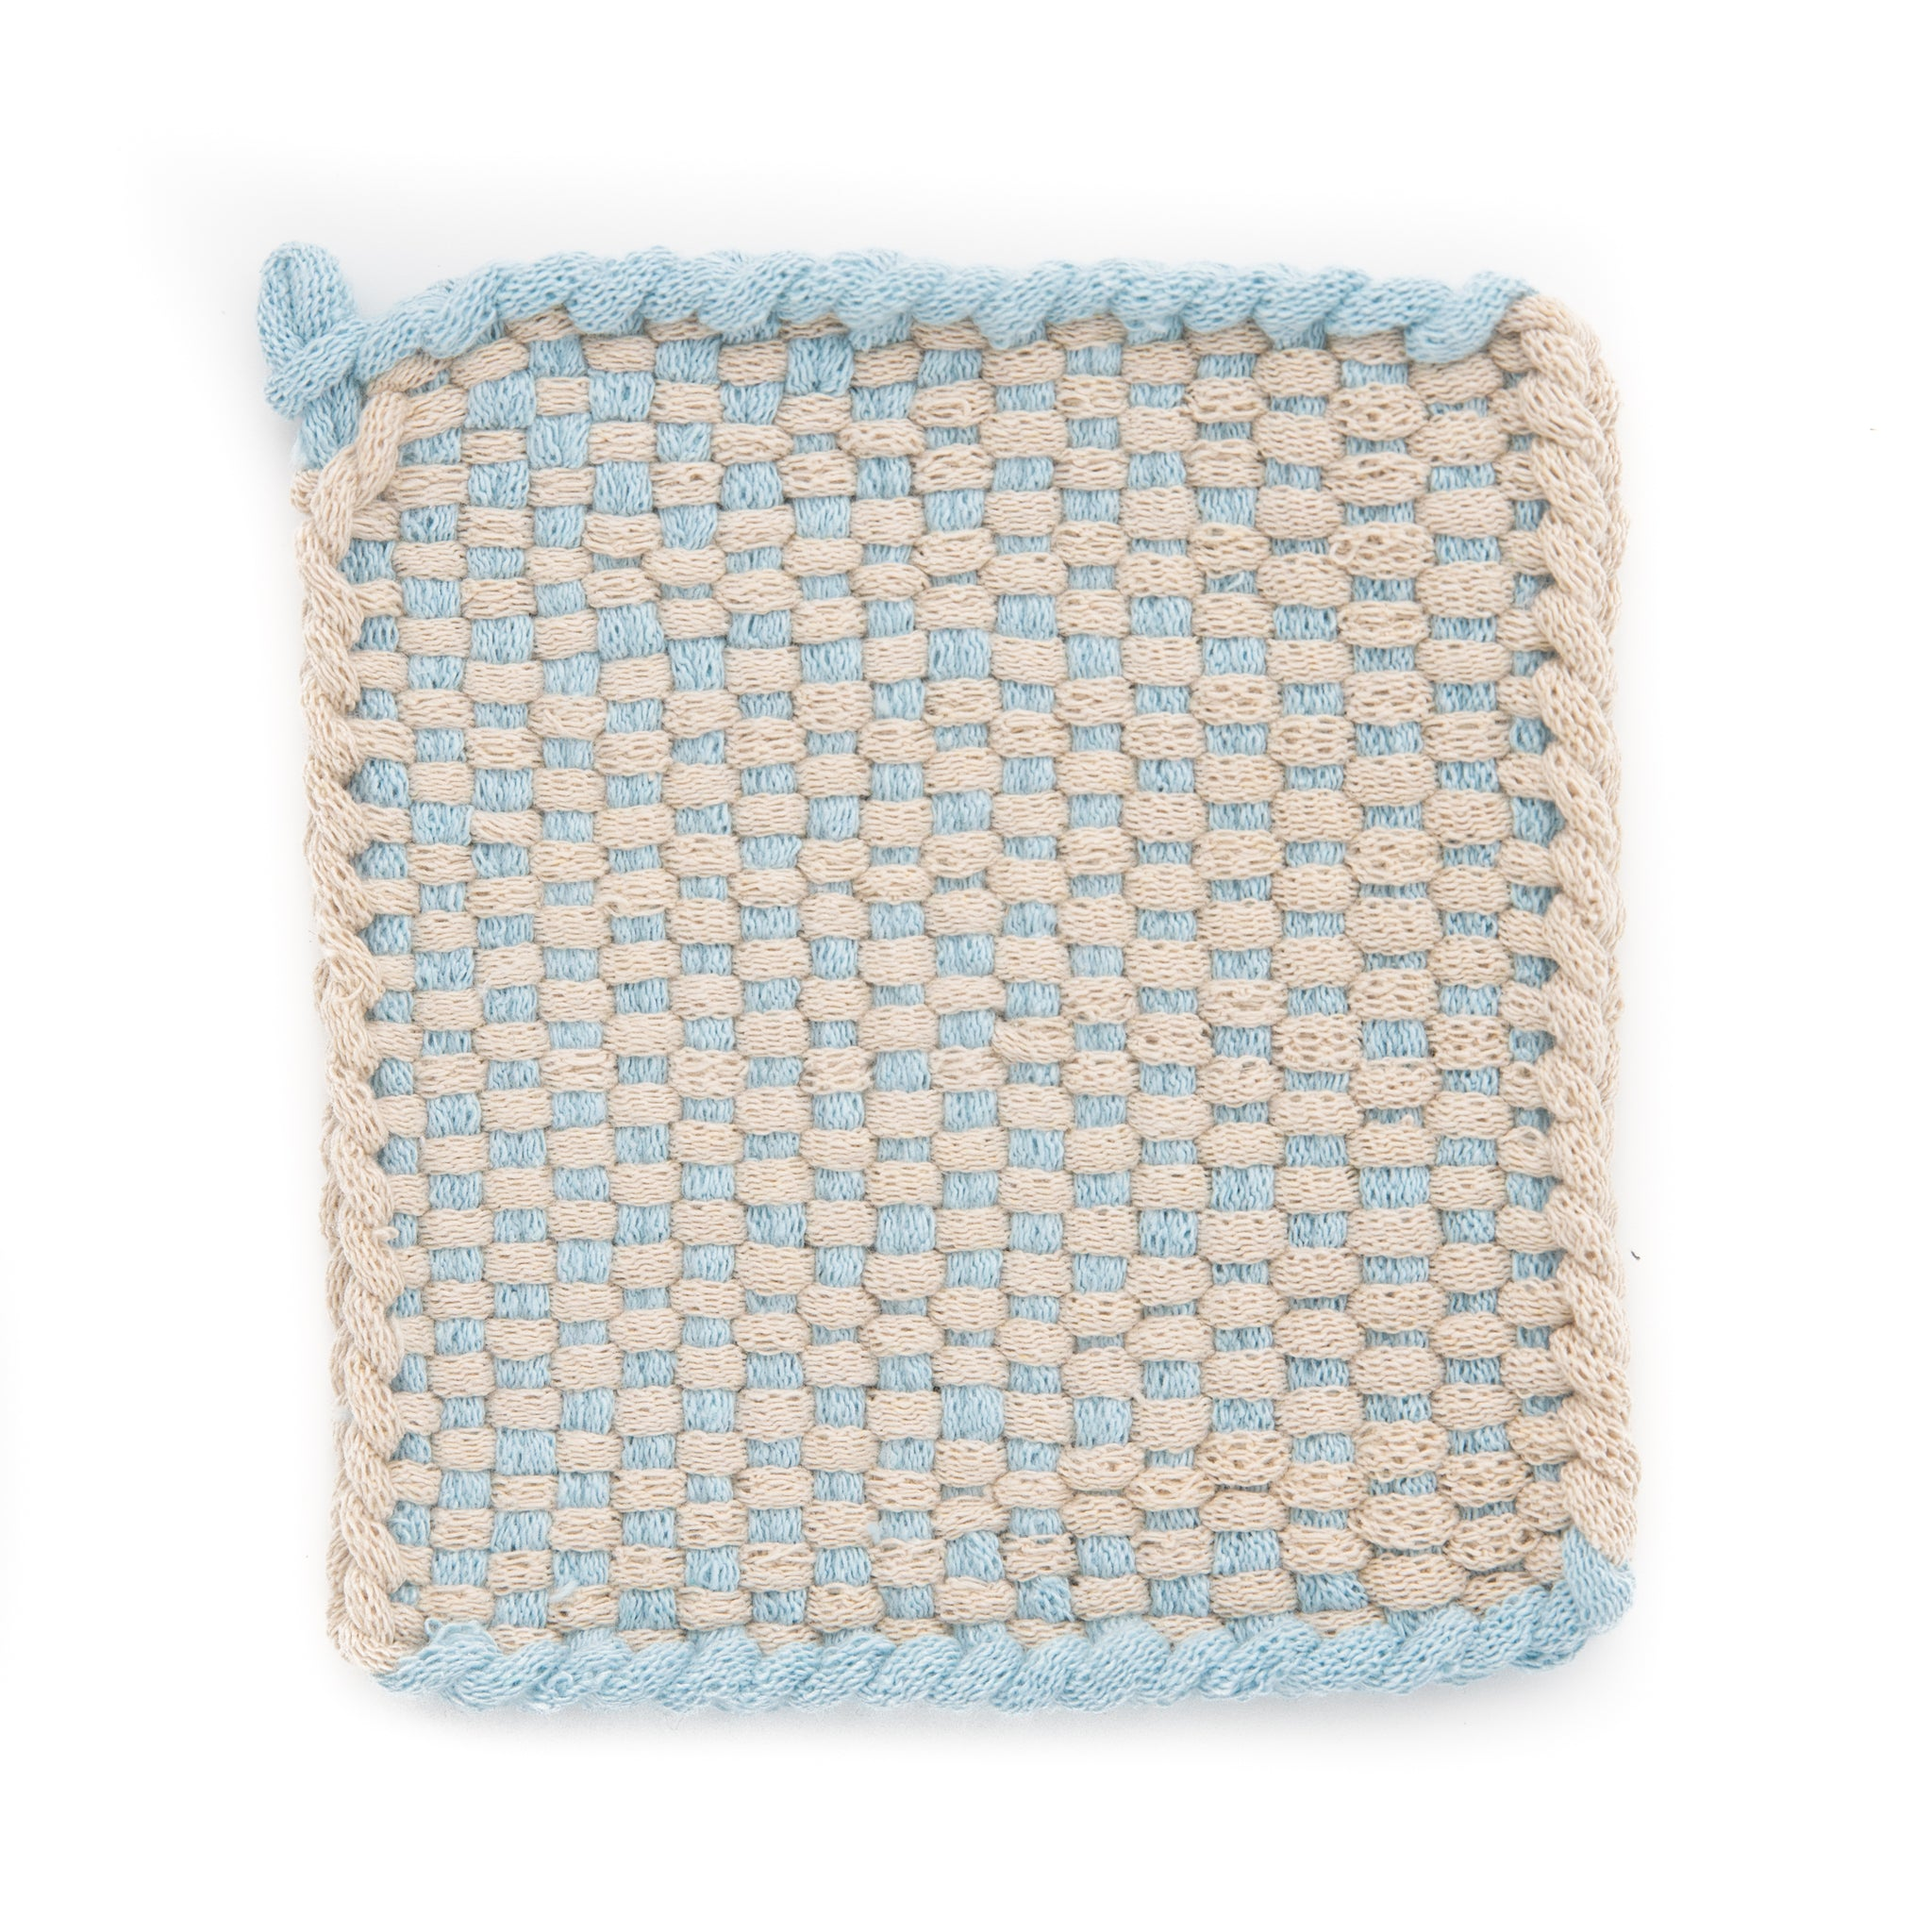 Open Sky Collection in Flax and Powder Blue